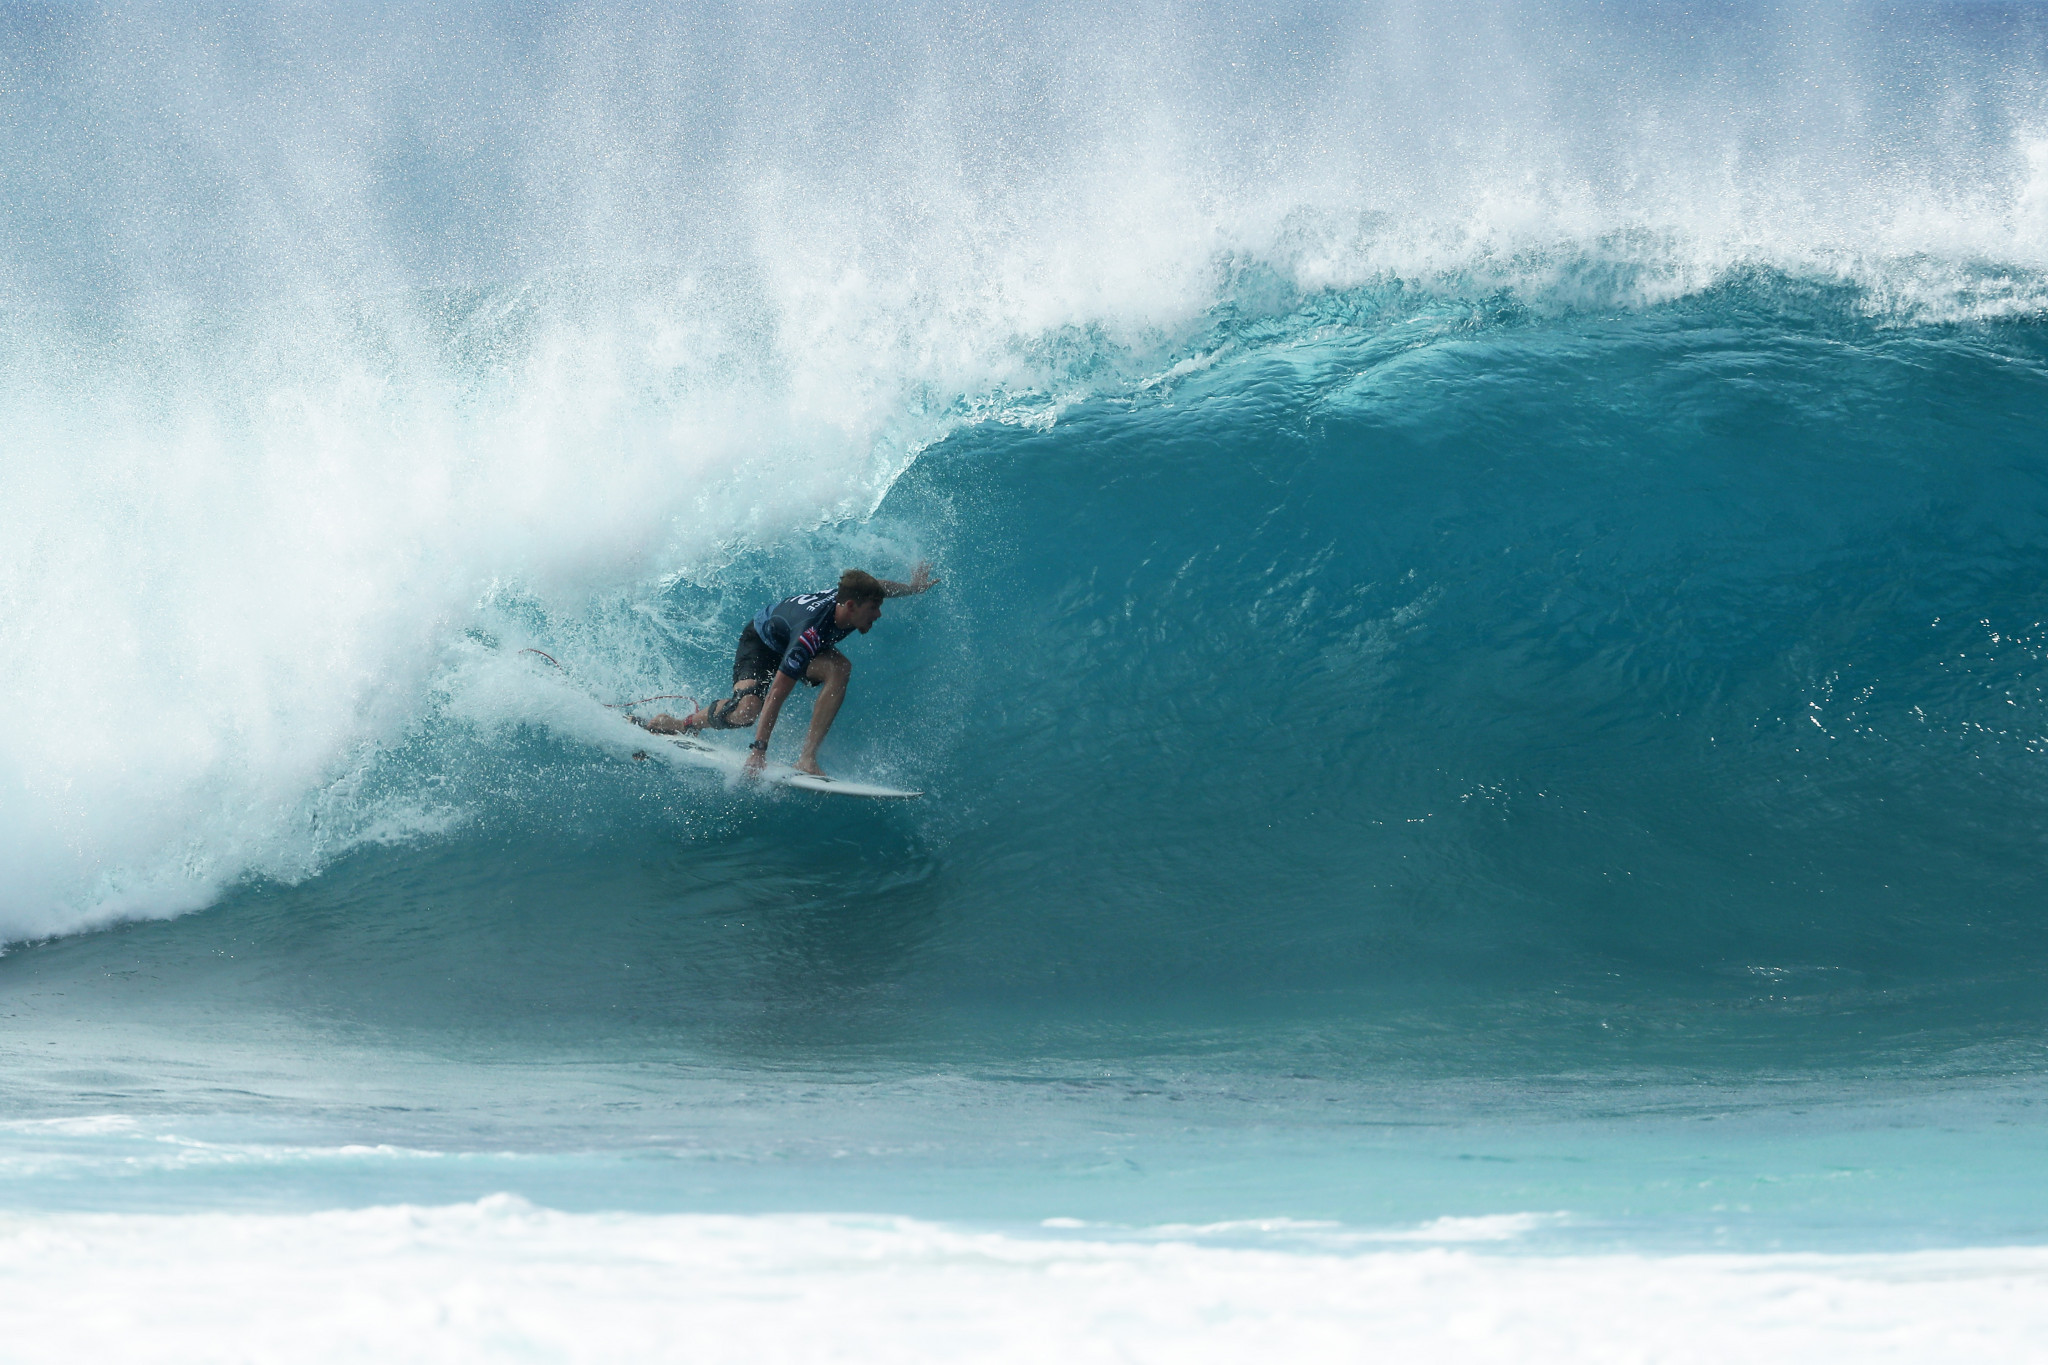 Two-time world champion John John Florence is part of the four-member American surf team for Tokyo 2020 ©Getty Images